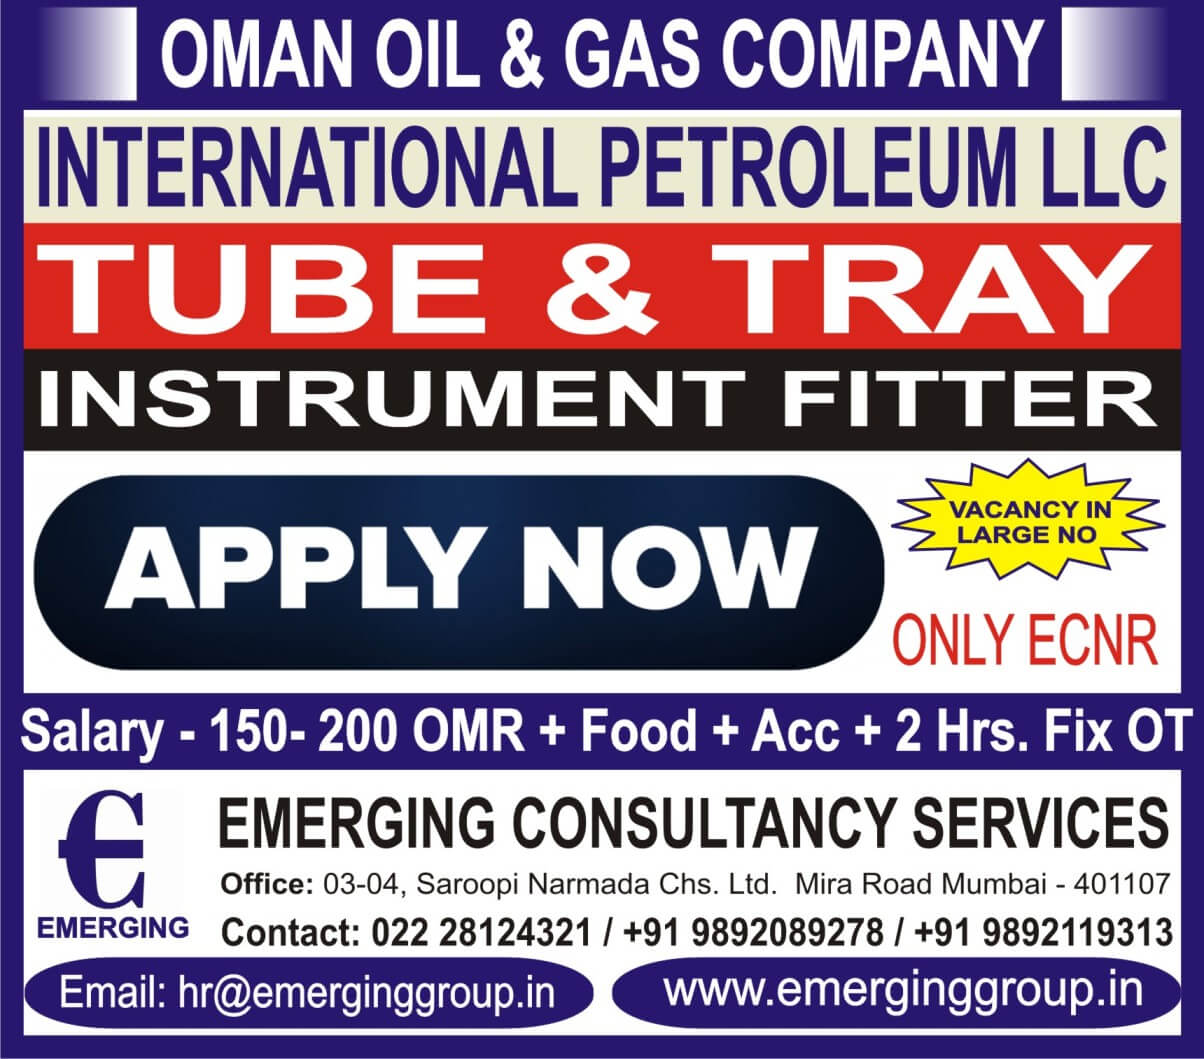 Oman Oil & Gas Company Urgent Required Tube & Tray